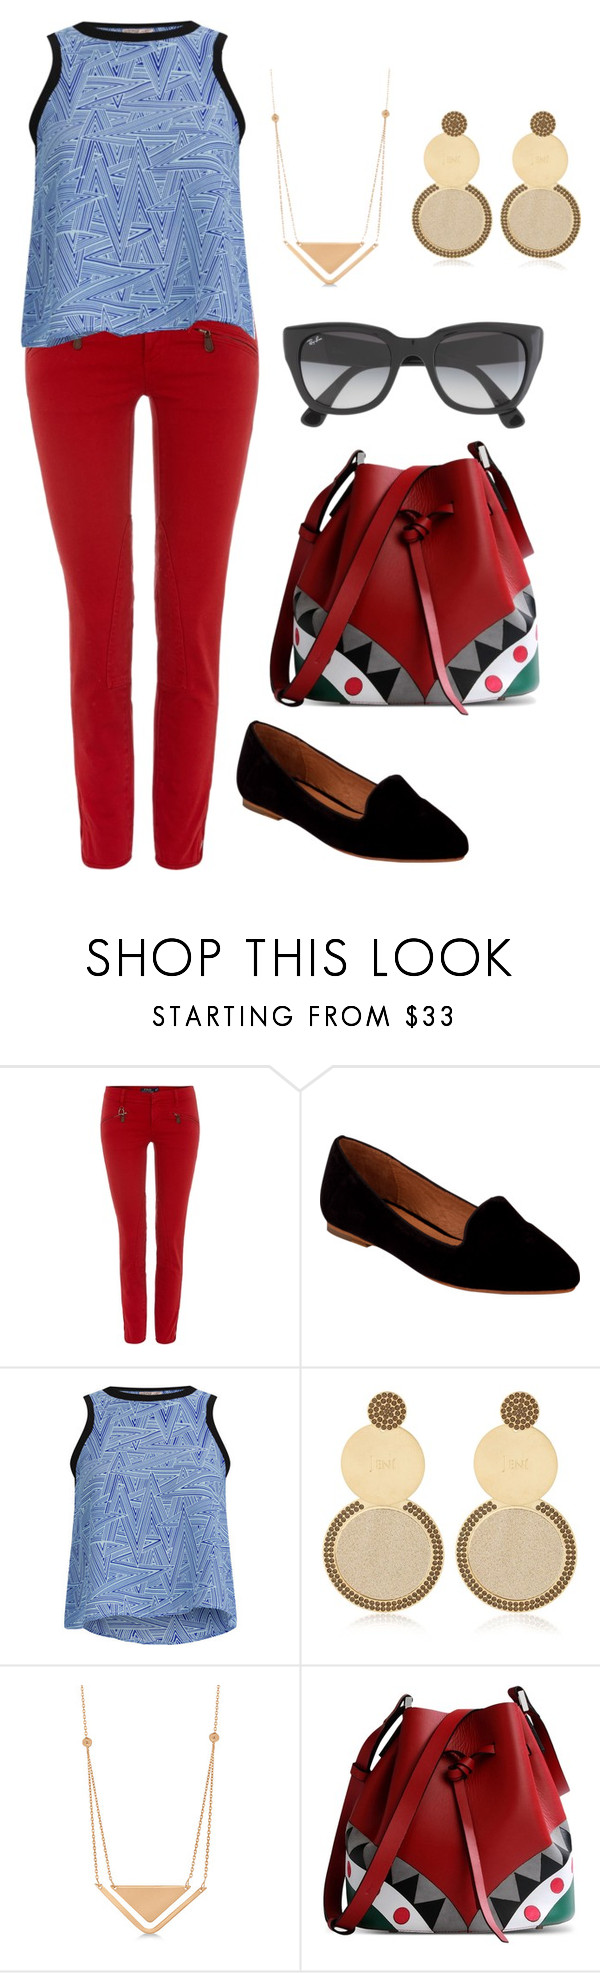 """""""Untitled #48"""" by calyope ❤ liked on Polyvore featuring Polo Ralph Lauren, Joie, Neon Rose, Jení, Allurez, Les Petits Joueurs and Ray-Ban"""